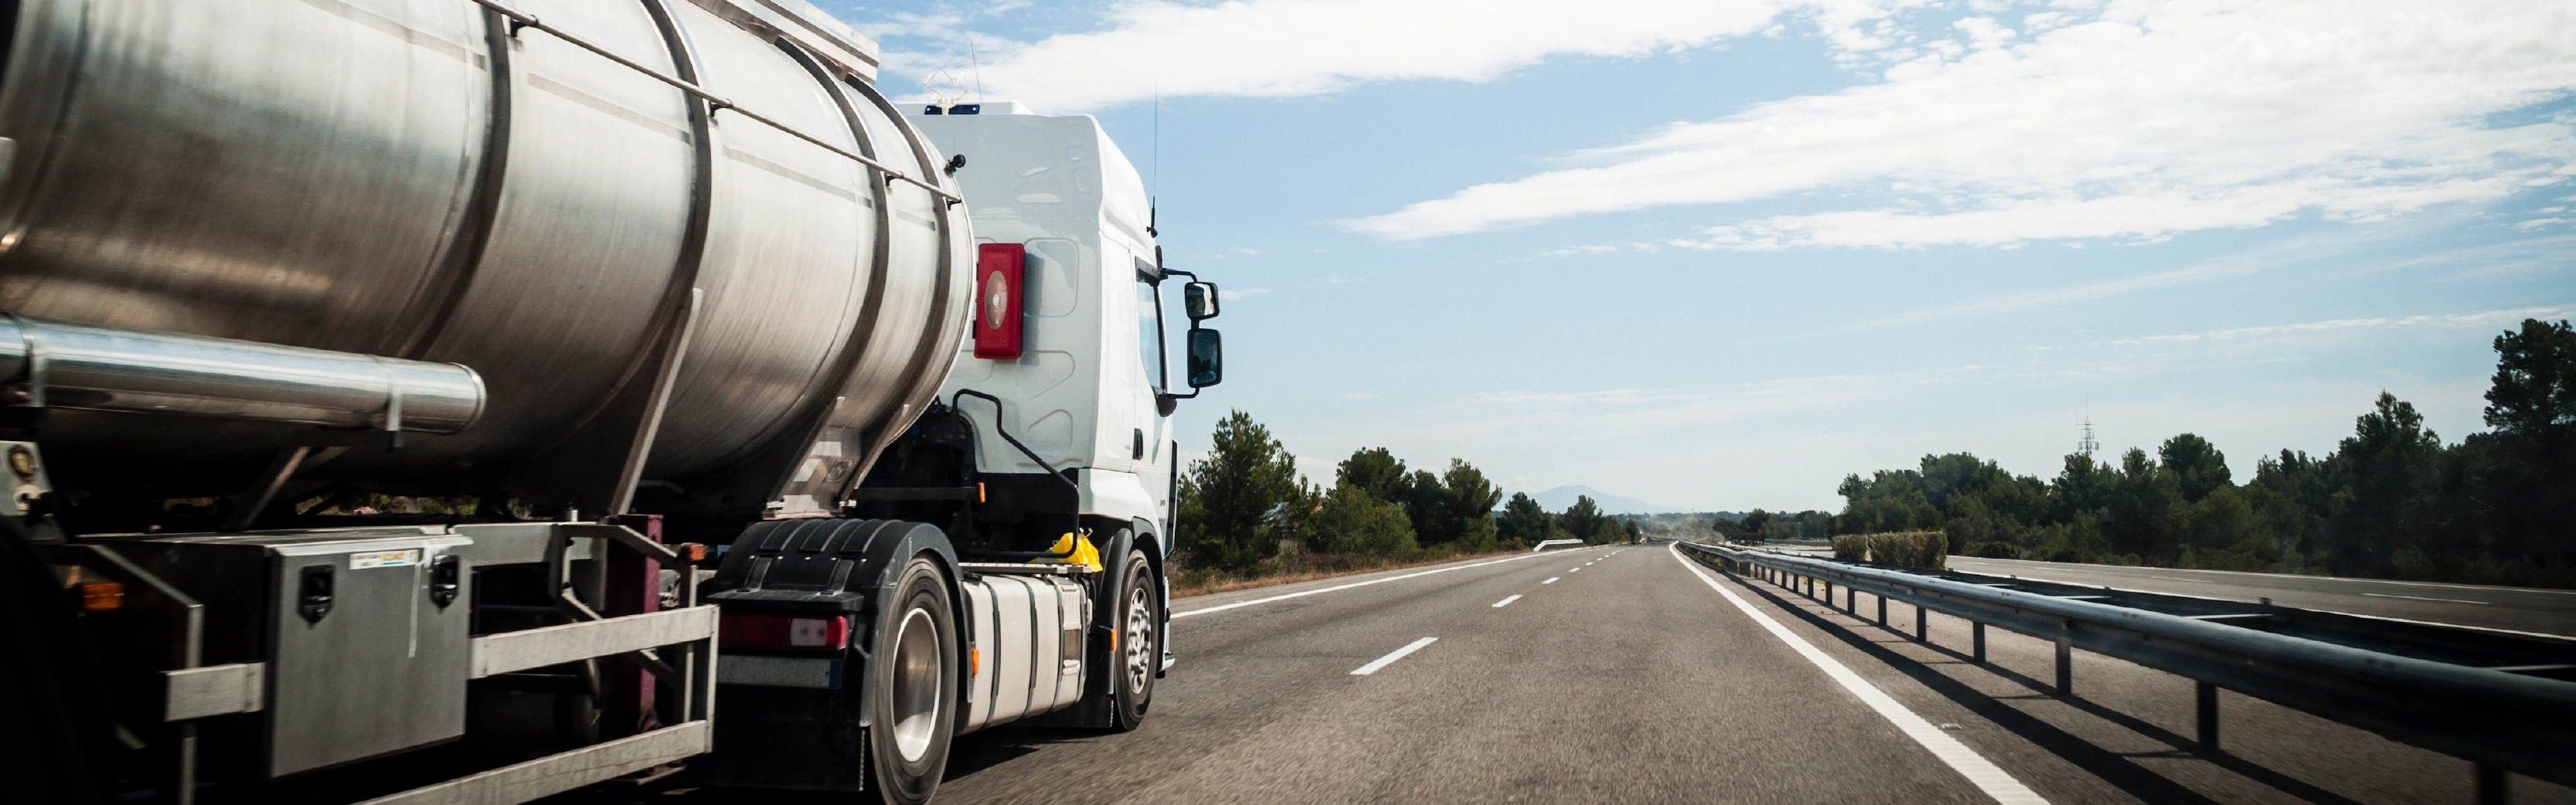 Fleet management problems and how to avoid them